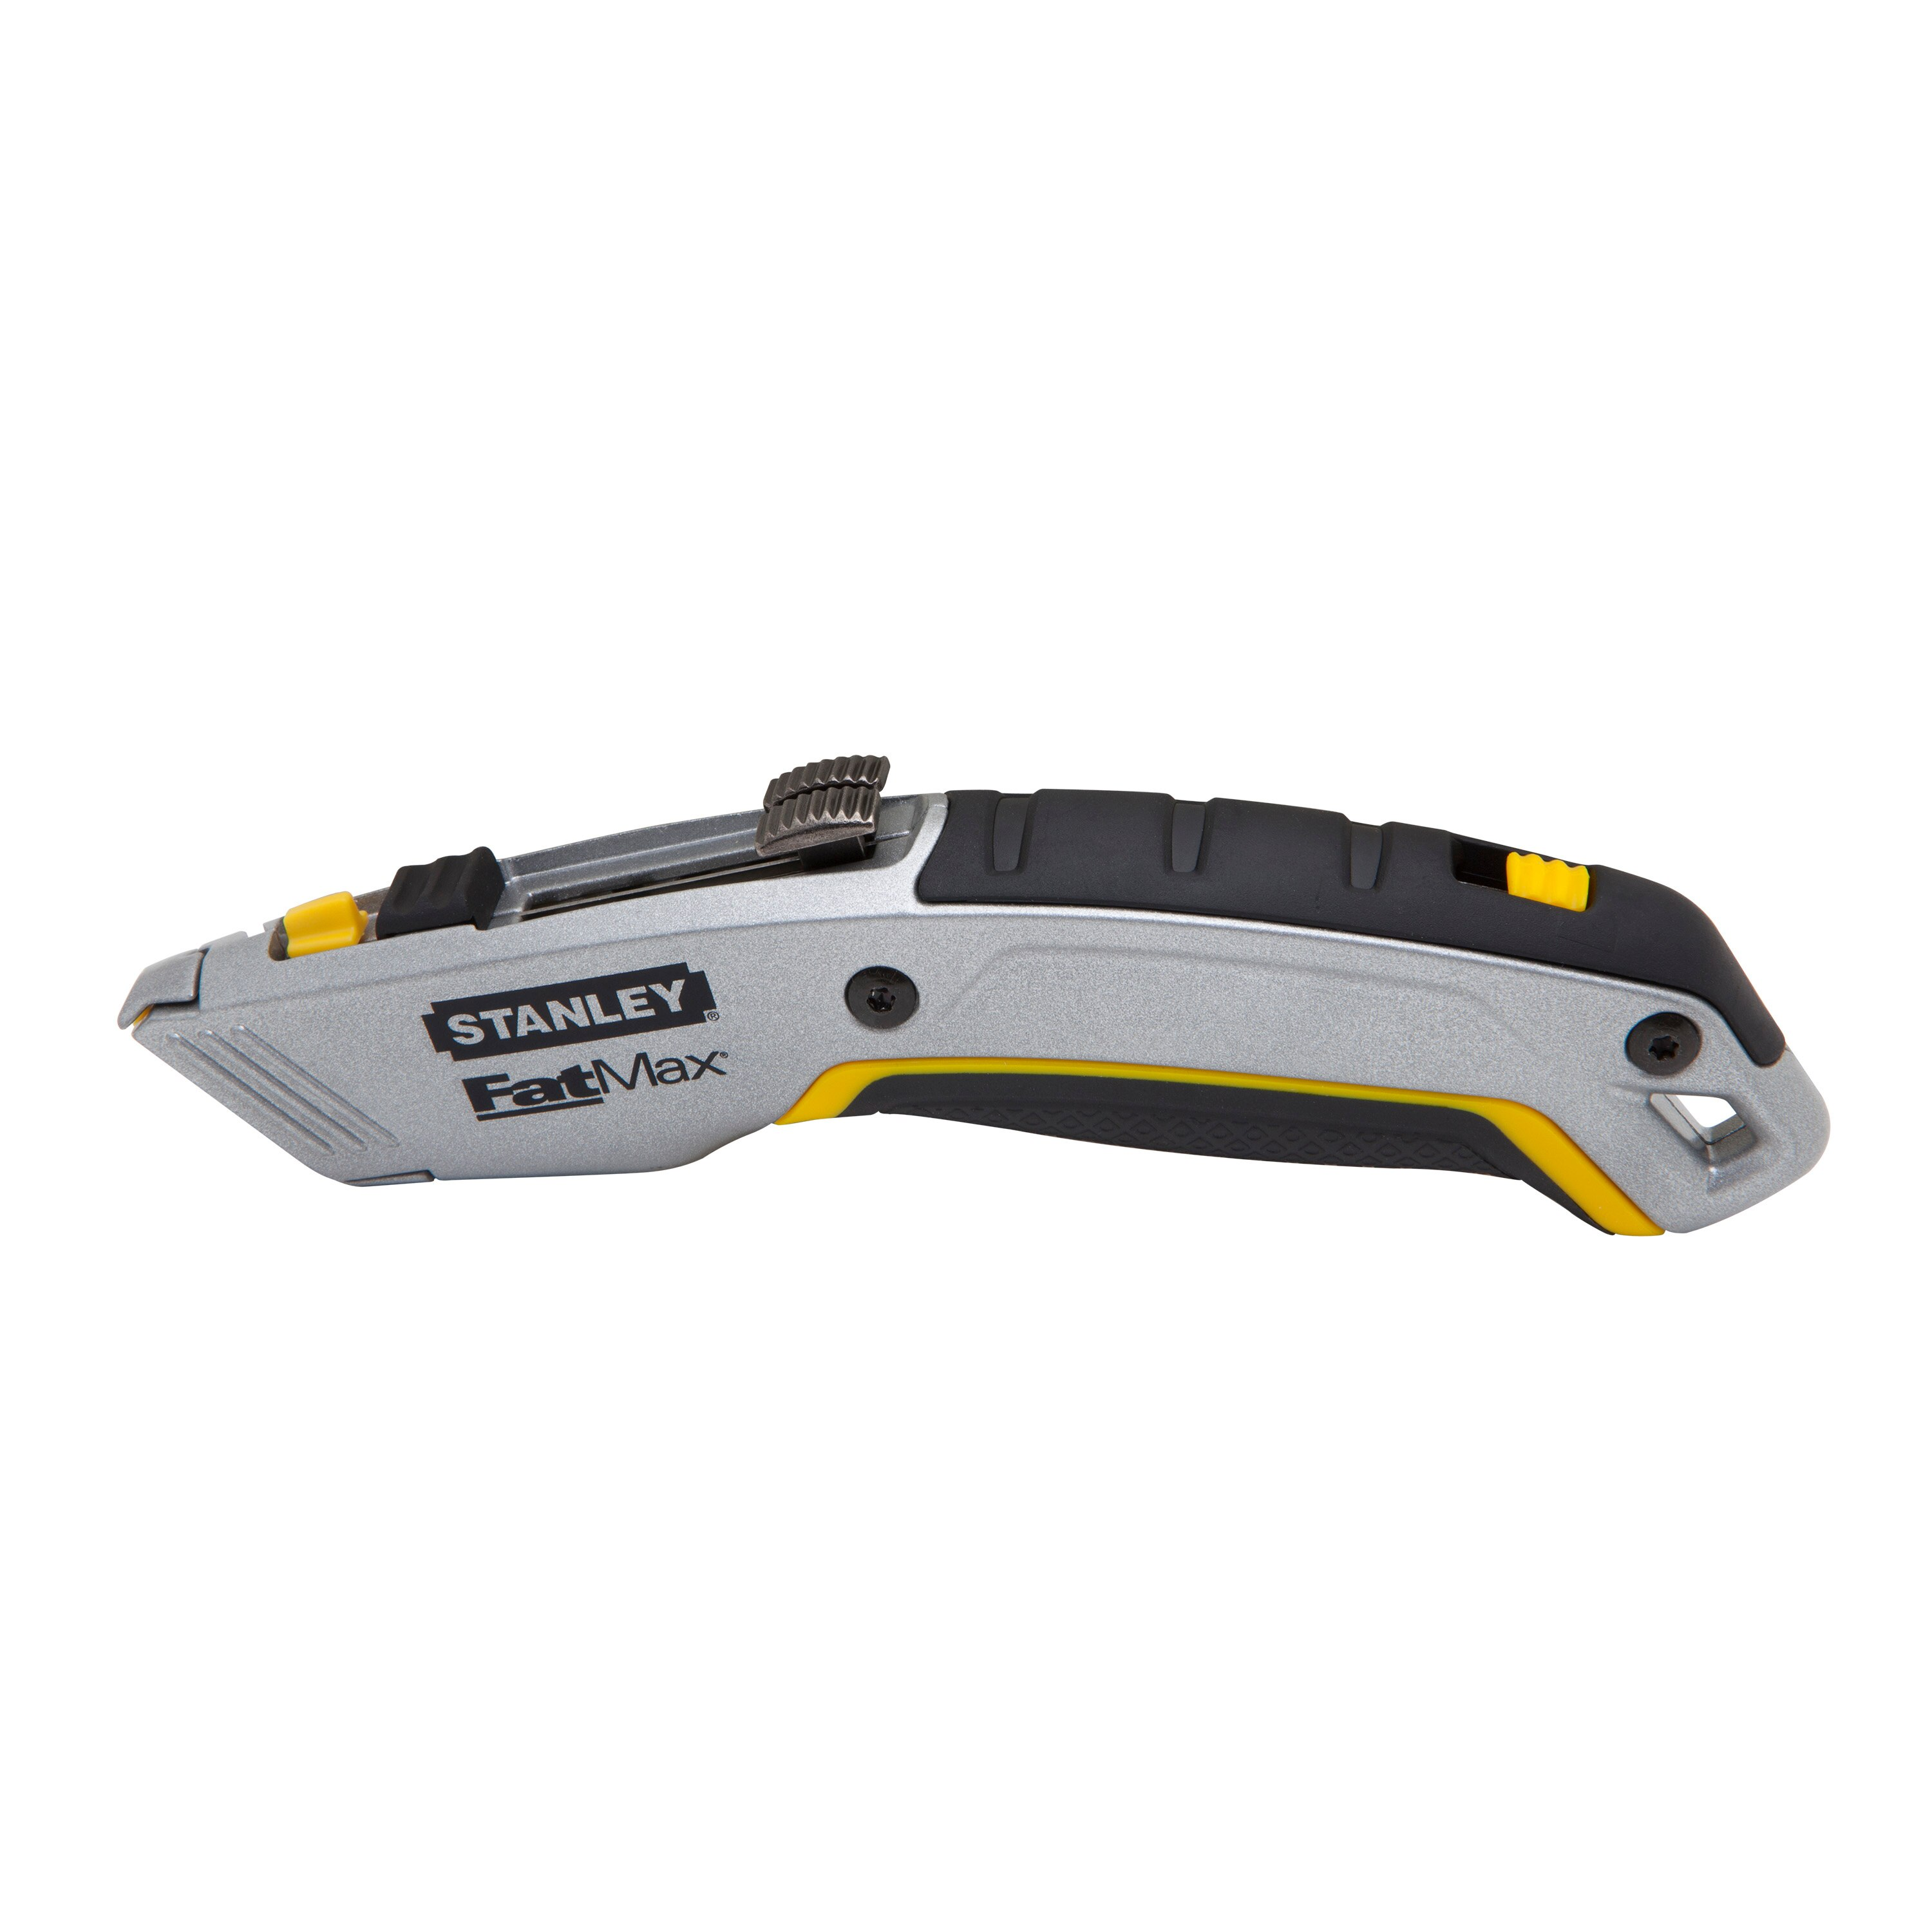 Stanley Tools - 678 in FATMAX Twin Blade Utility Knife - 10-789